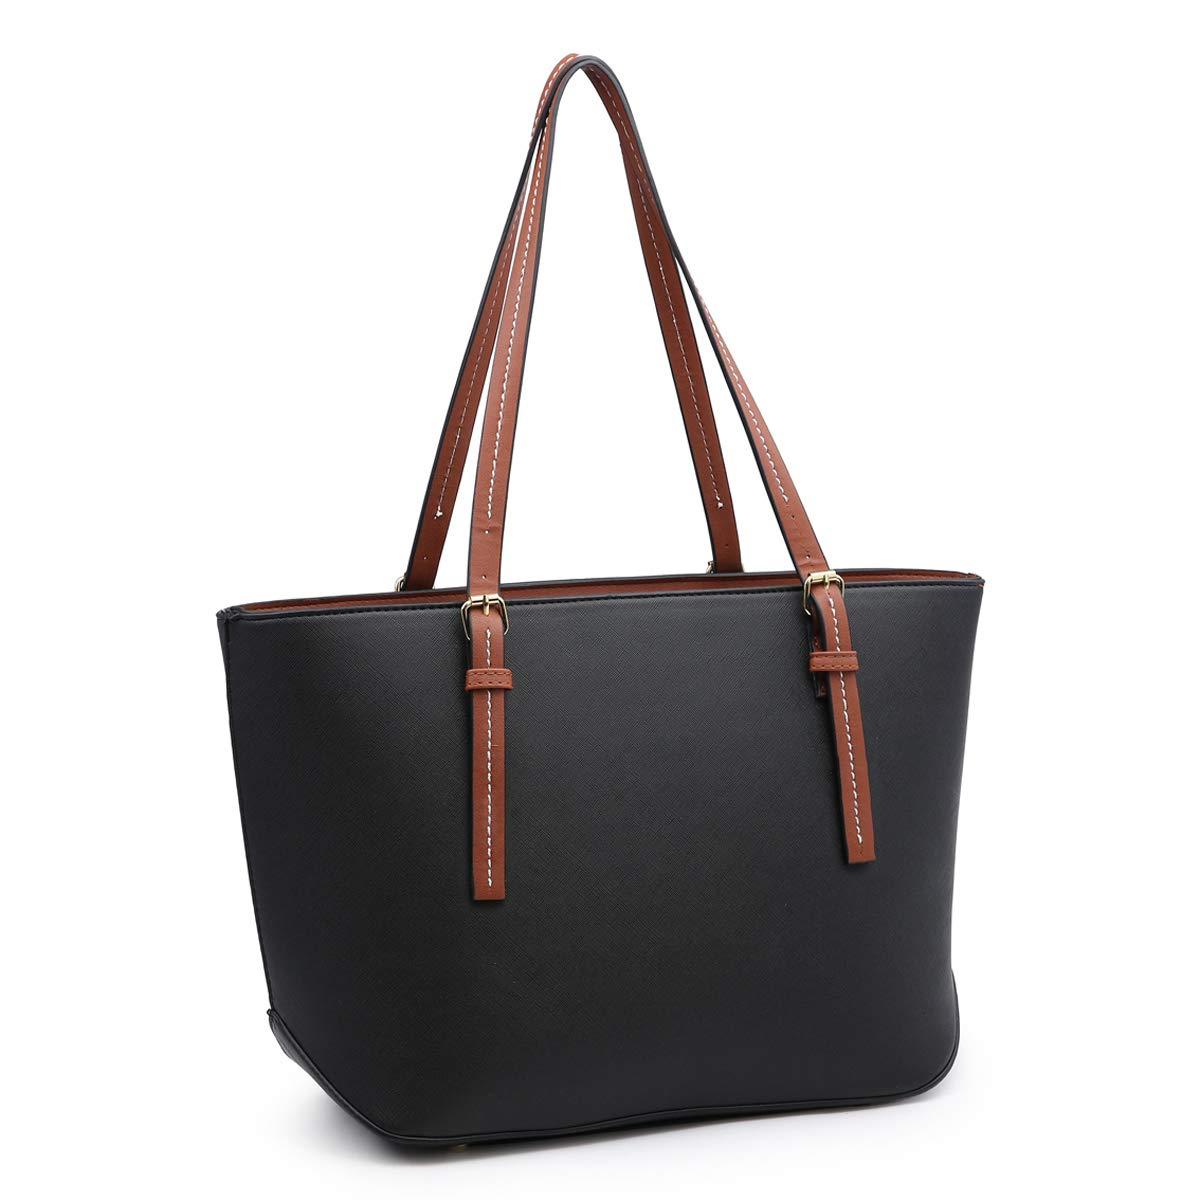 Amazon.com  XB Laptop Tote Bag Fits Up to 13.3   Lightweight Work Tote Bag  Women s Top Handle Satchel Handbags Purse Tote Shoulder Bag (Black)  Shoes 11c627a272a4d